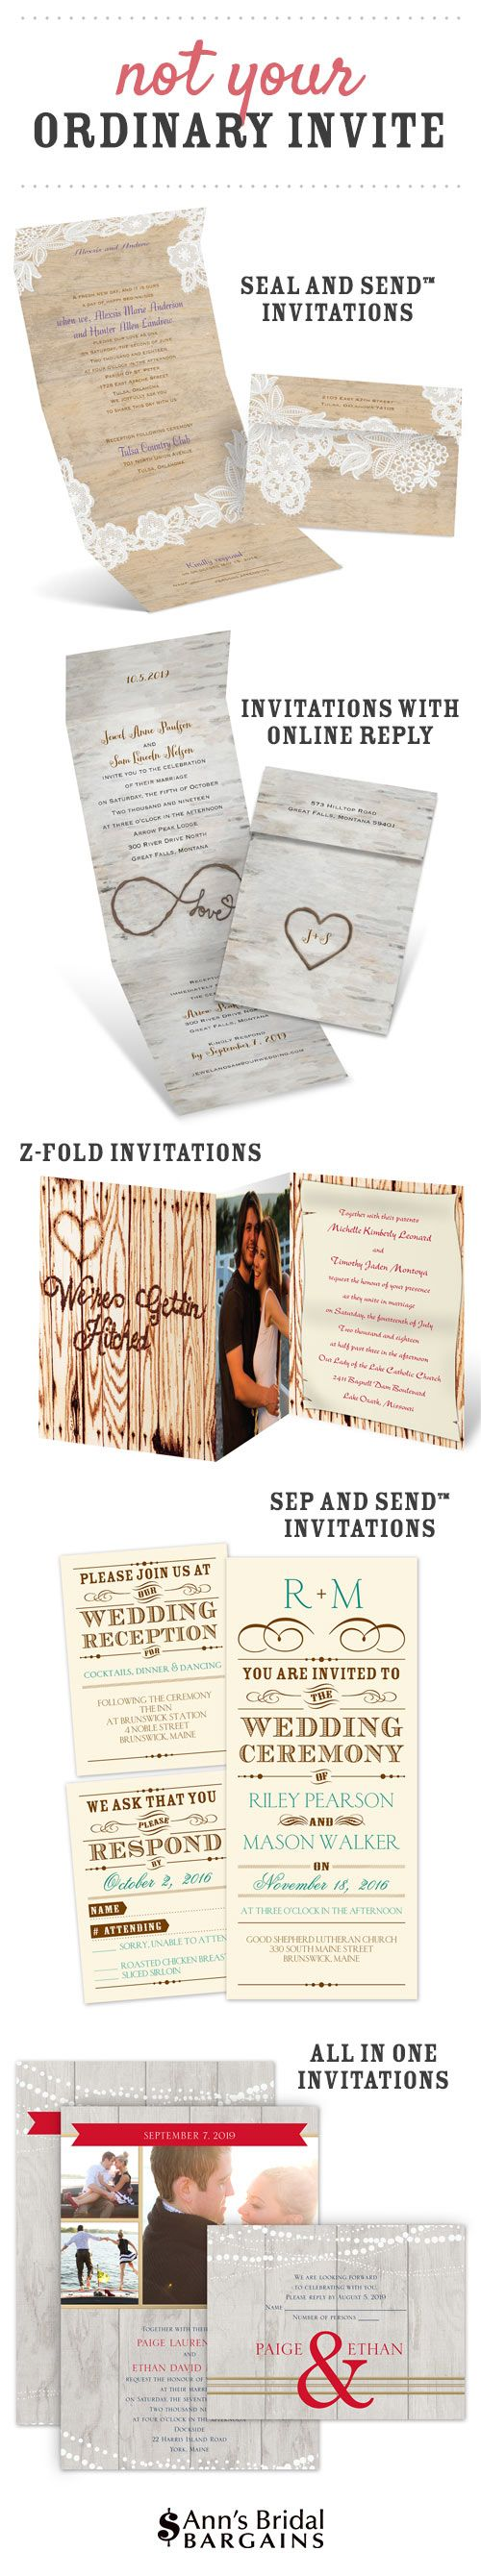 wedding invitation wording with no reception%0A Ann u    s Bridal Bargains specializes in designing affordable wedding  invitations that rival those of our higher priced